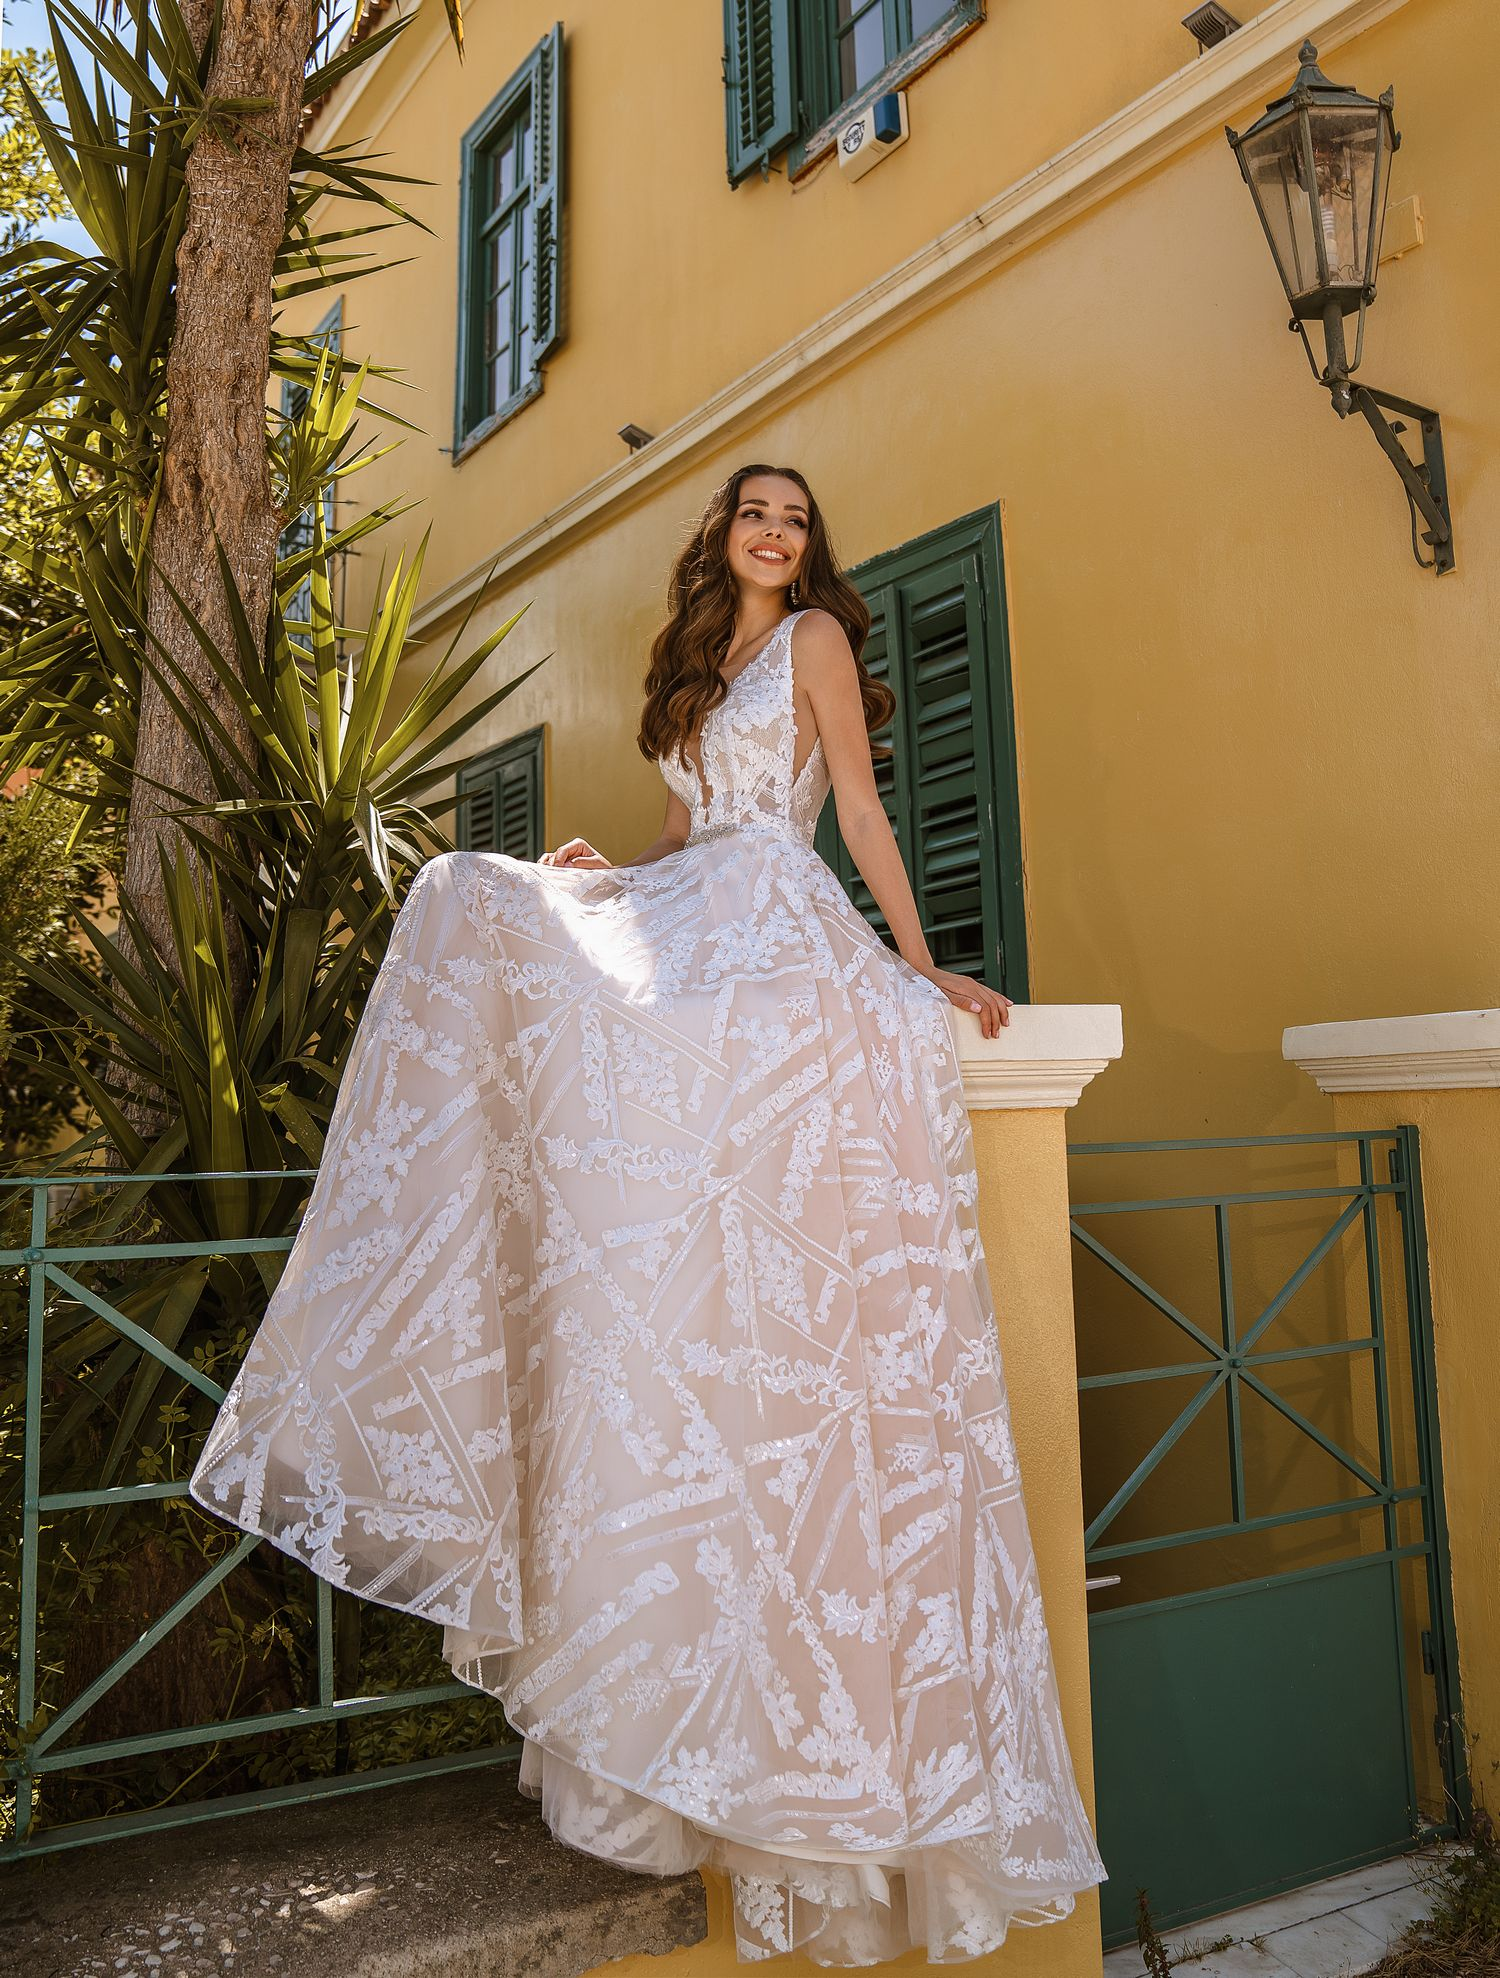 Wedding dress with cutouts on the bodice from TM Supernova wholesale-1